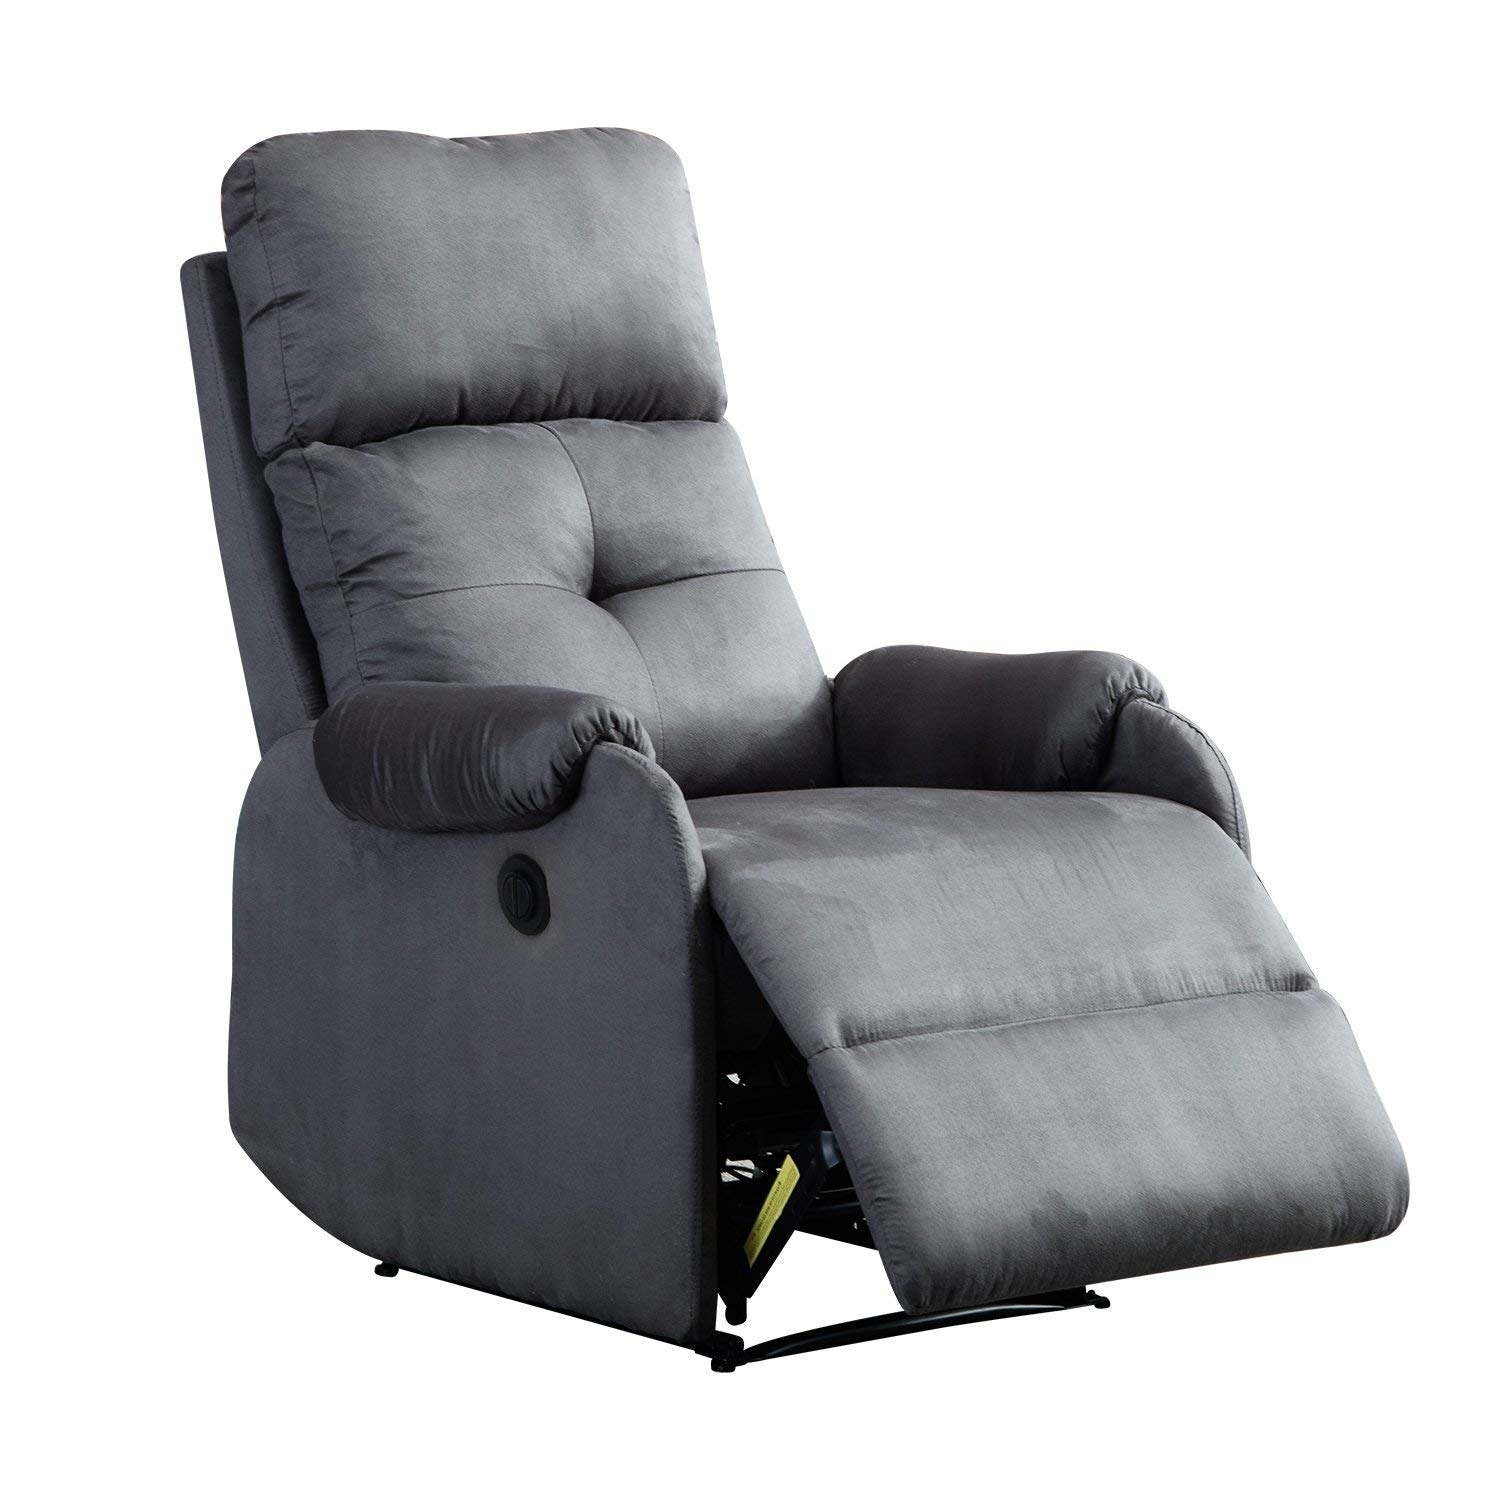 BONZY Power Recliner Chair with Suede Cover  Tuffted Backrest Gentle Reclining Track - Smoke Gray